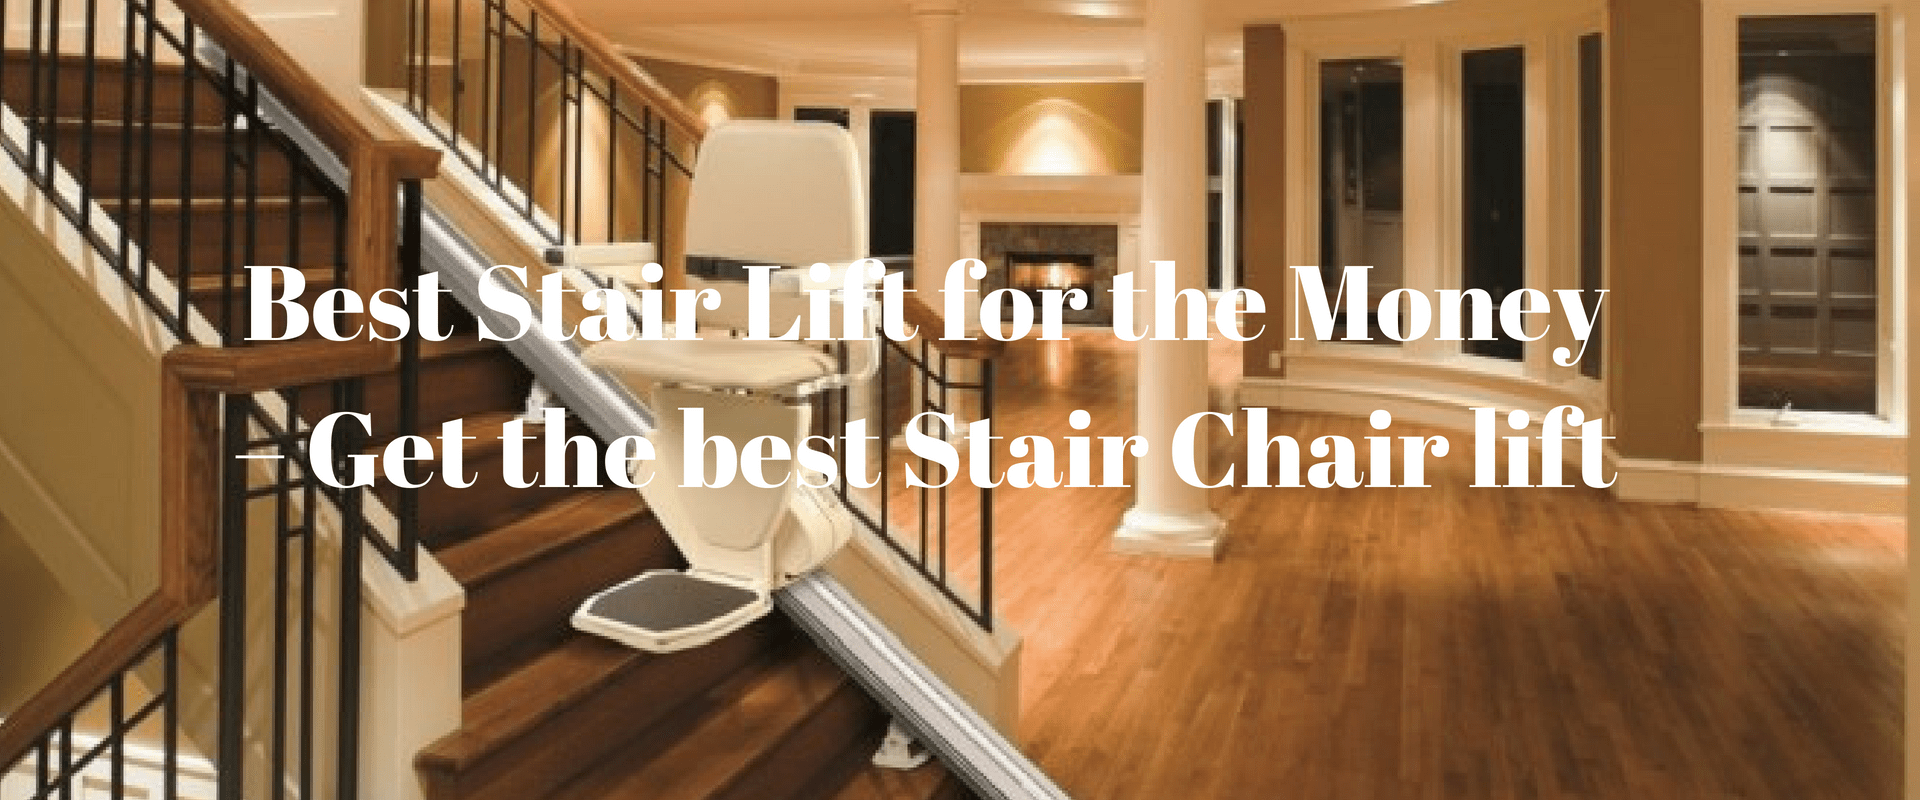 ems stair chair resin lounge best lift for the money get